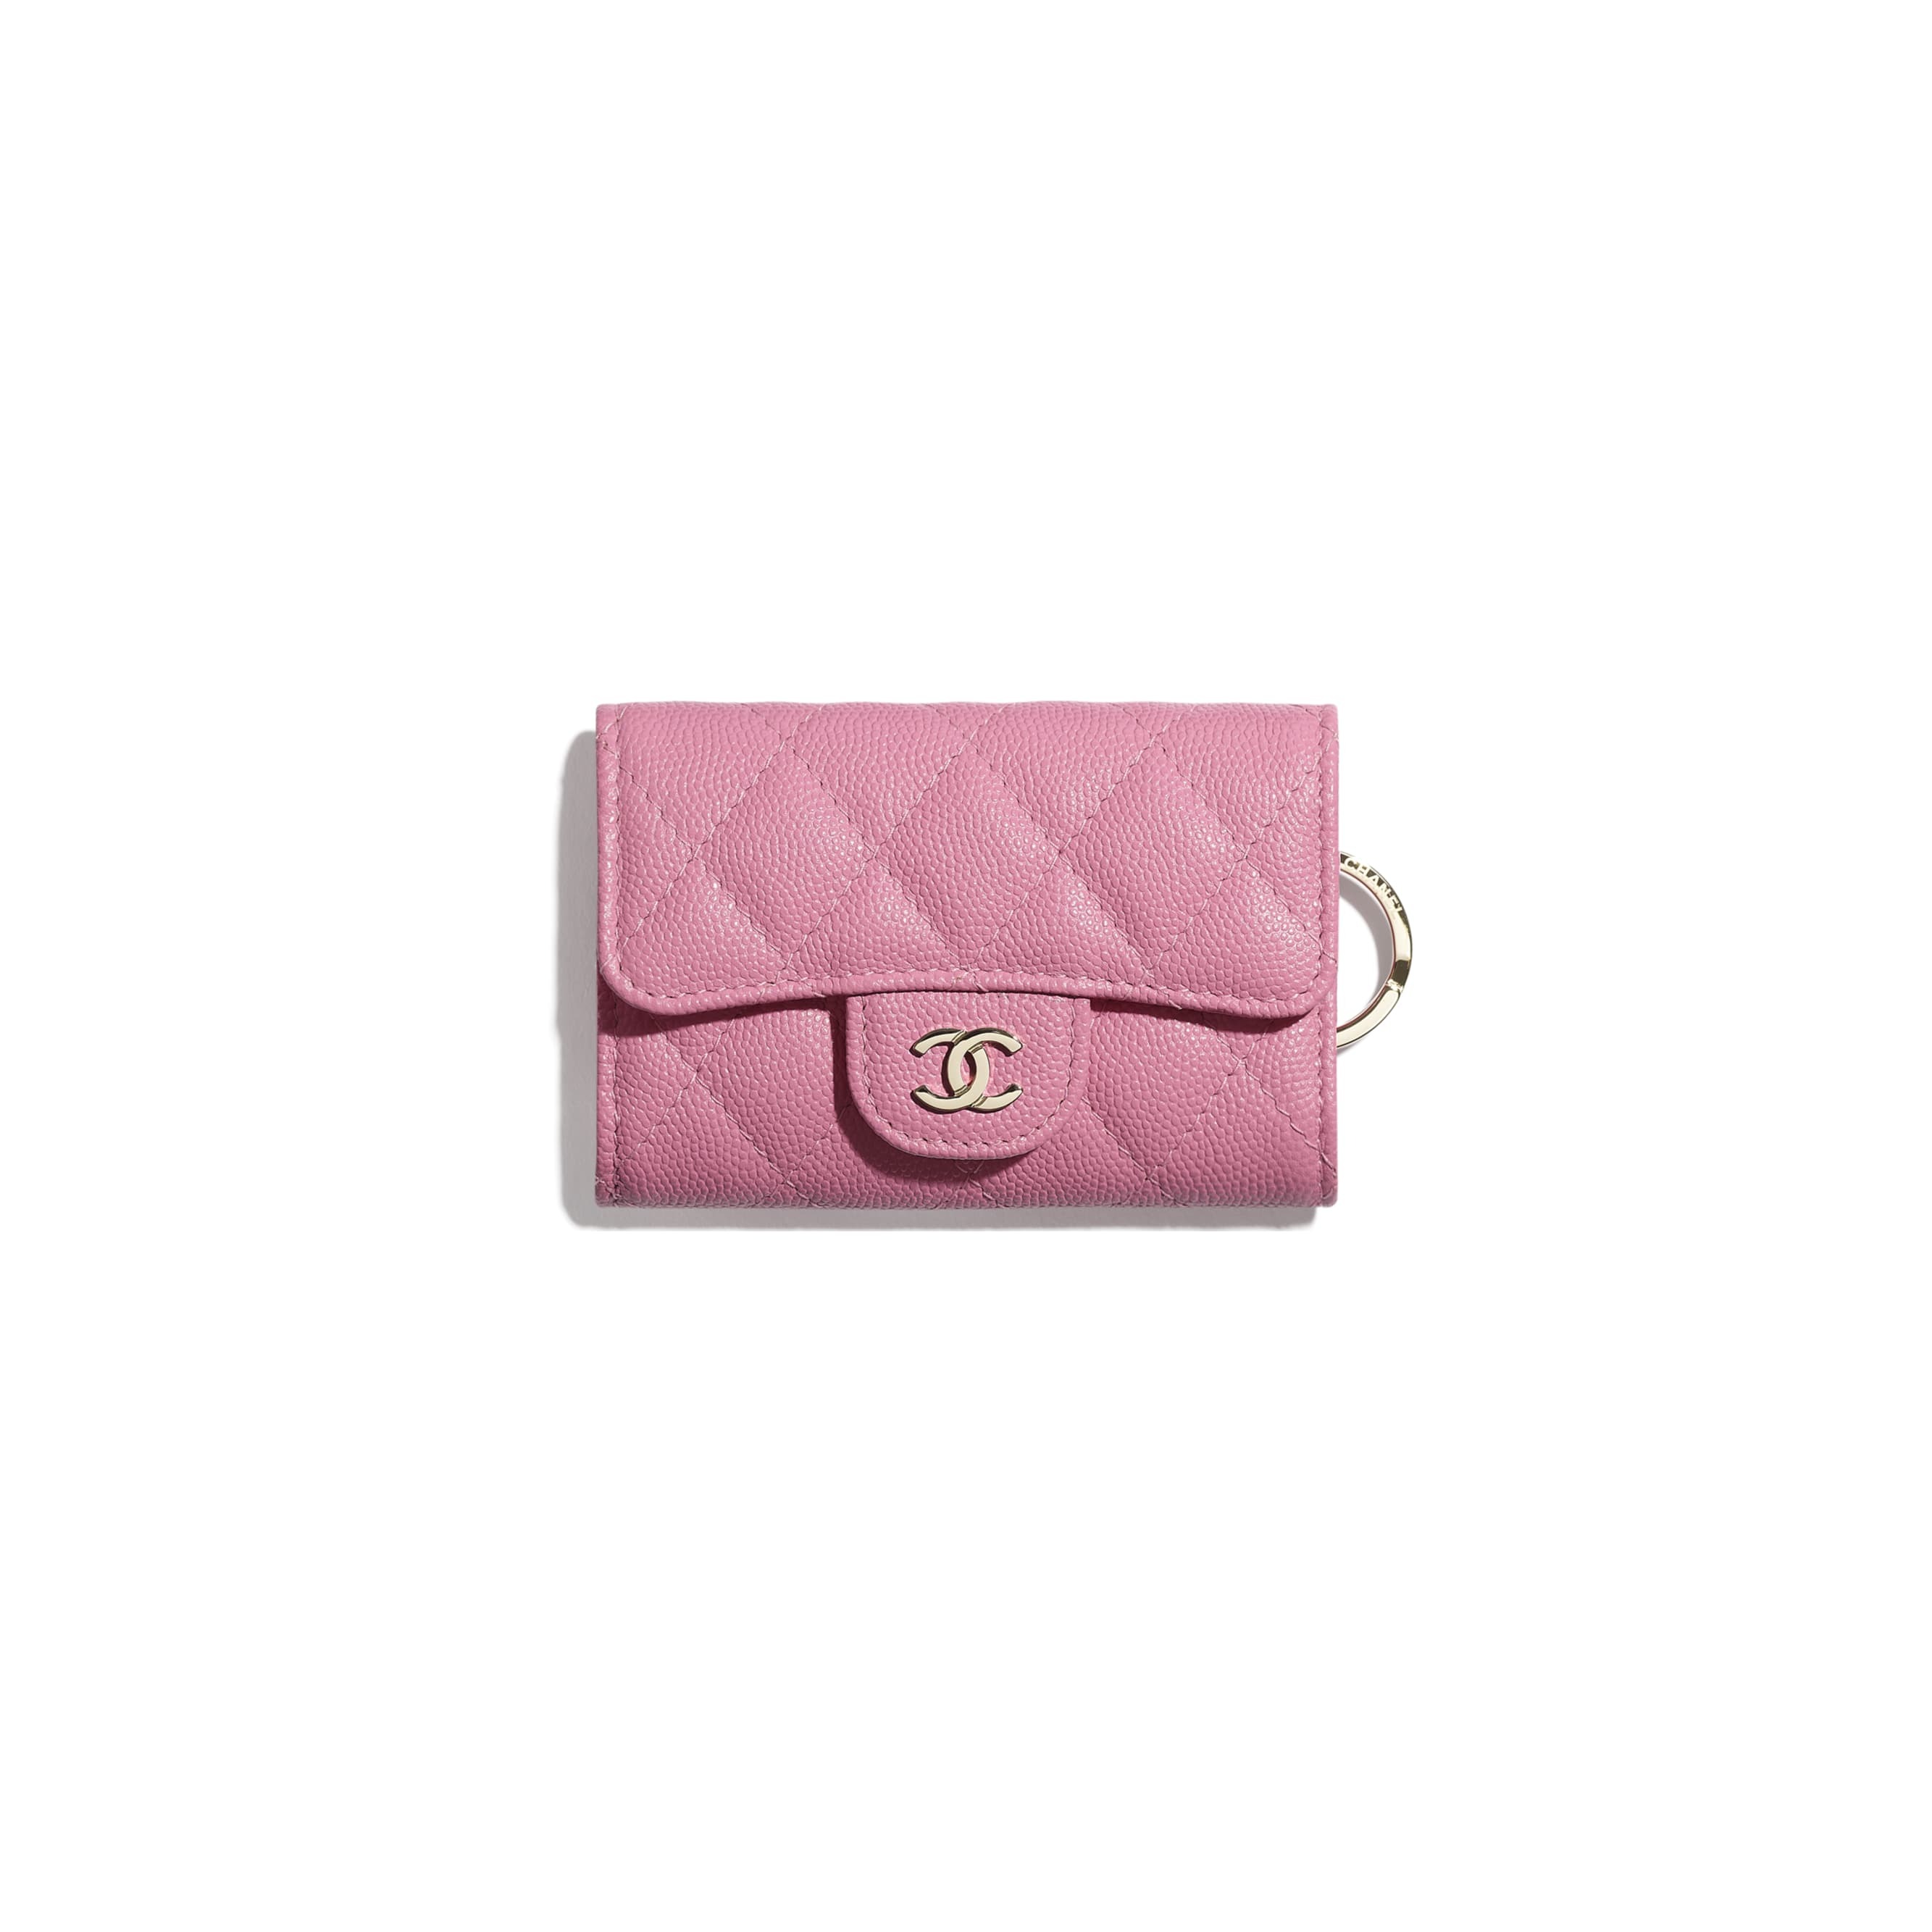 Classic Flap Key Holder - Pink - Grained Calfskin & Gold-Tone Metal - CHANEL - Default view - see standard sized version